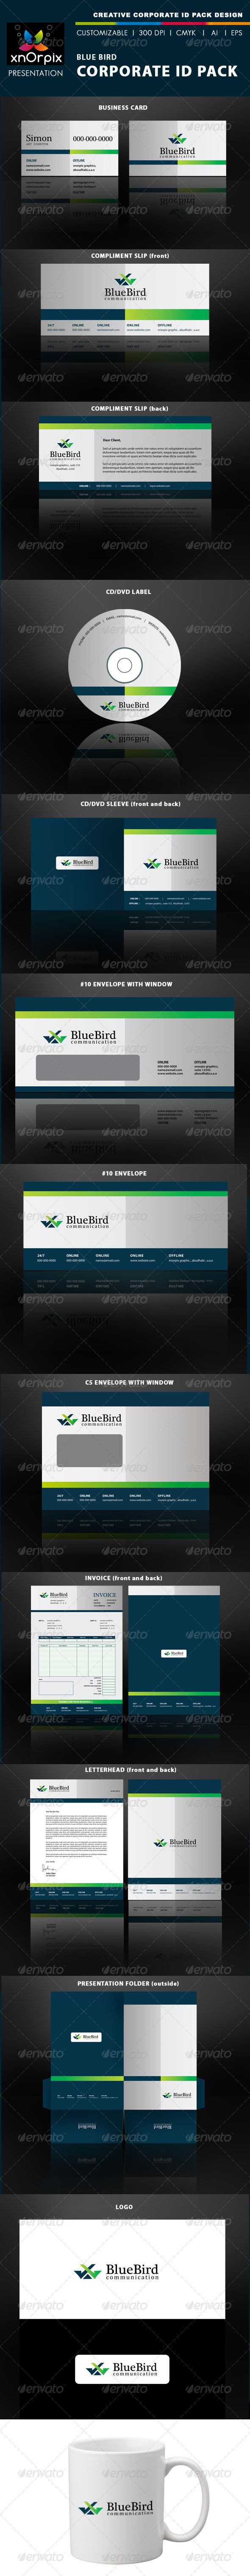 Blue Bird Corporate ID Pack - Stationery Print Templates